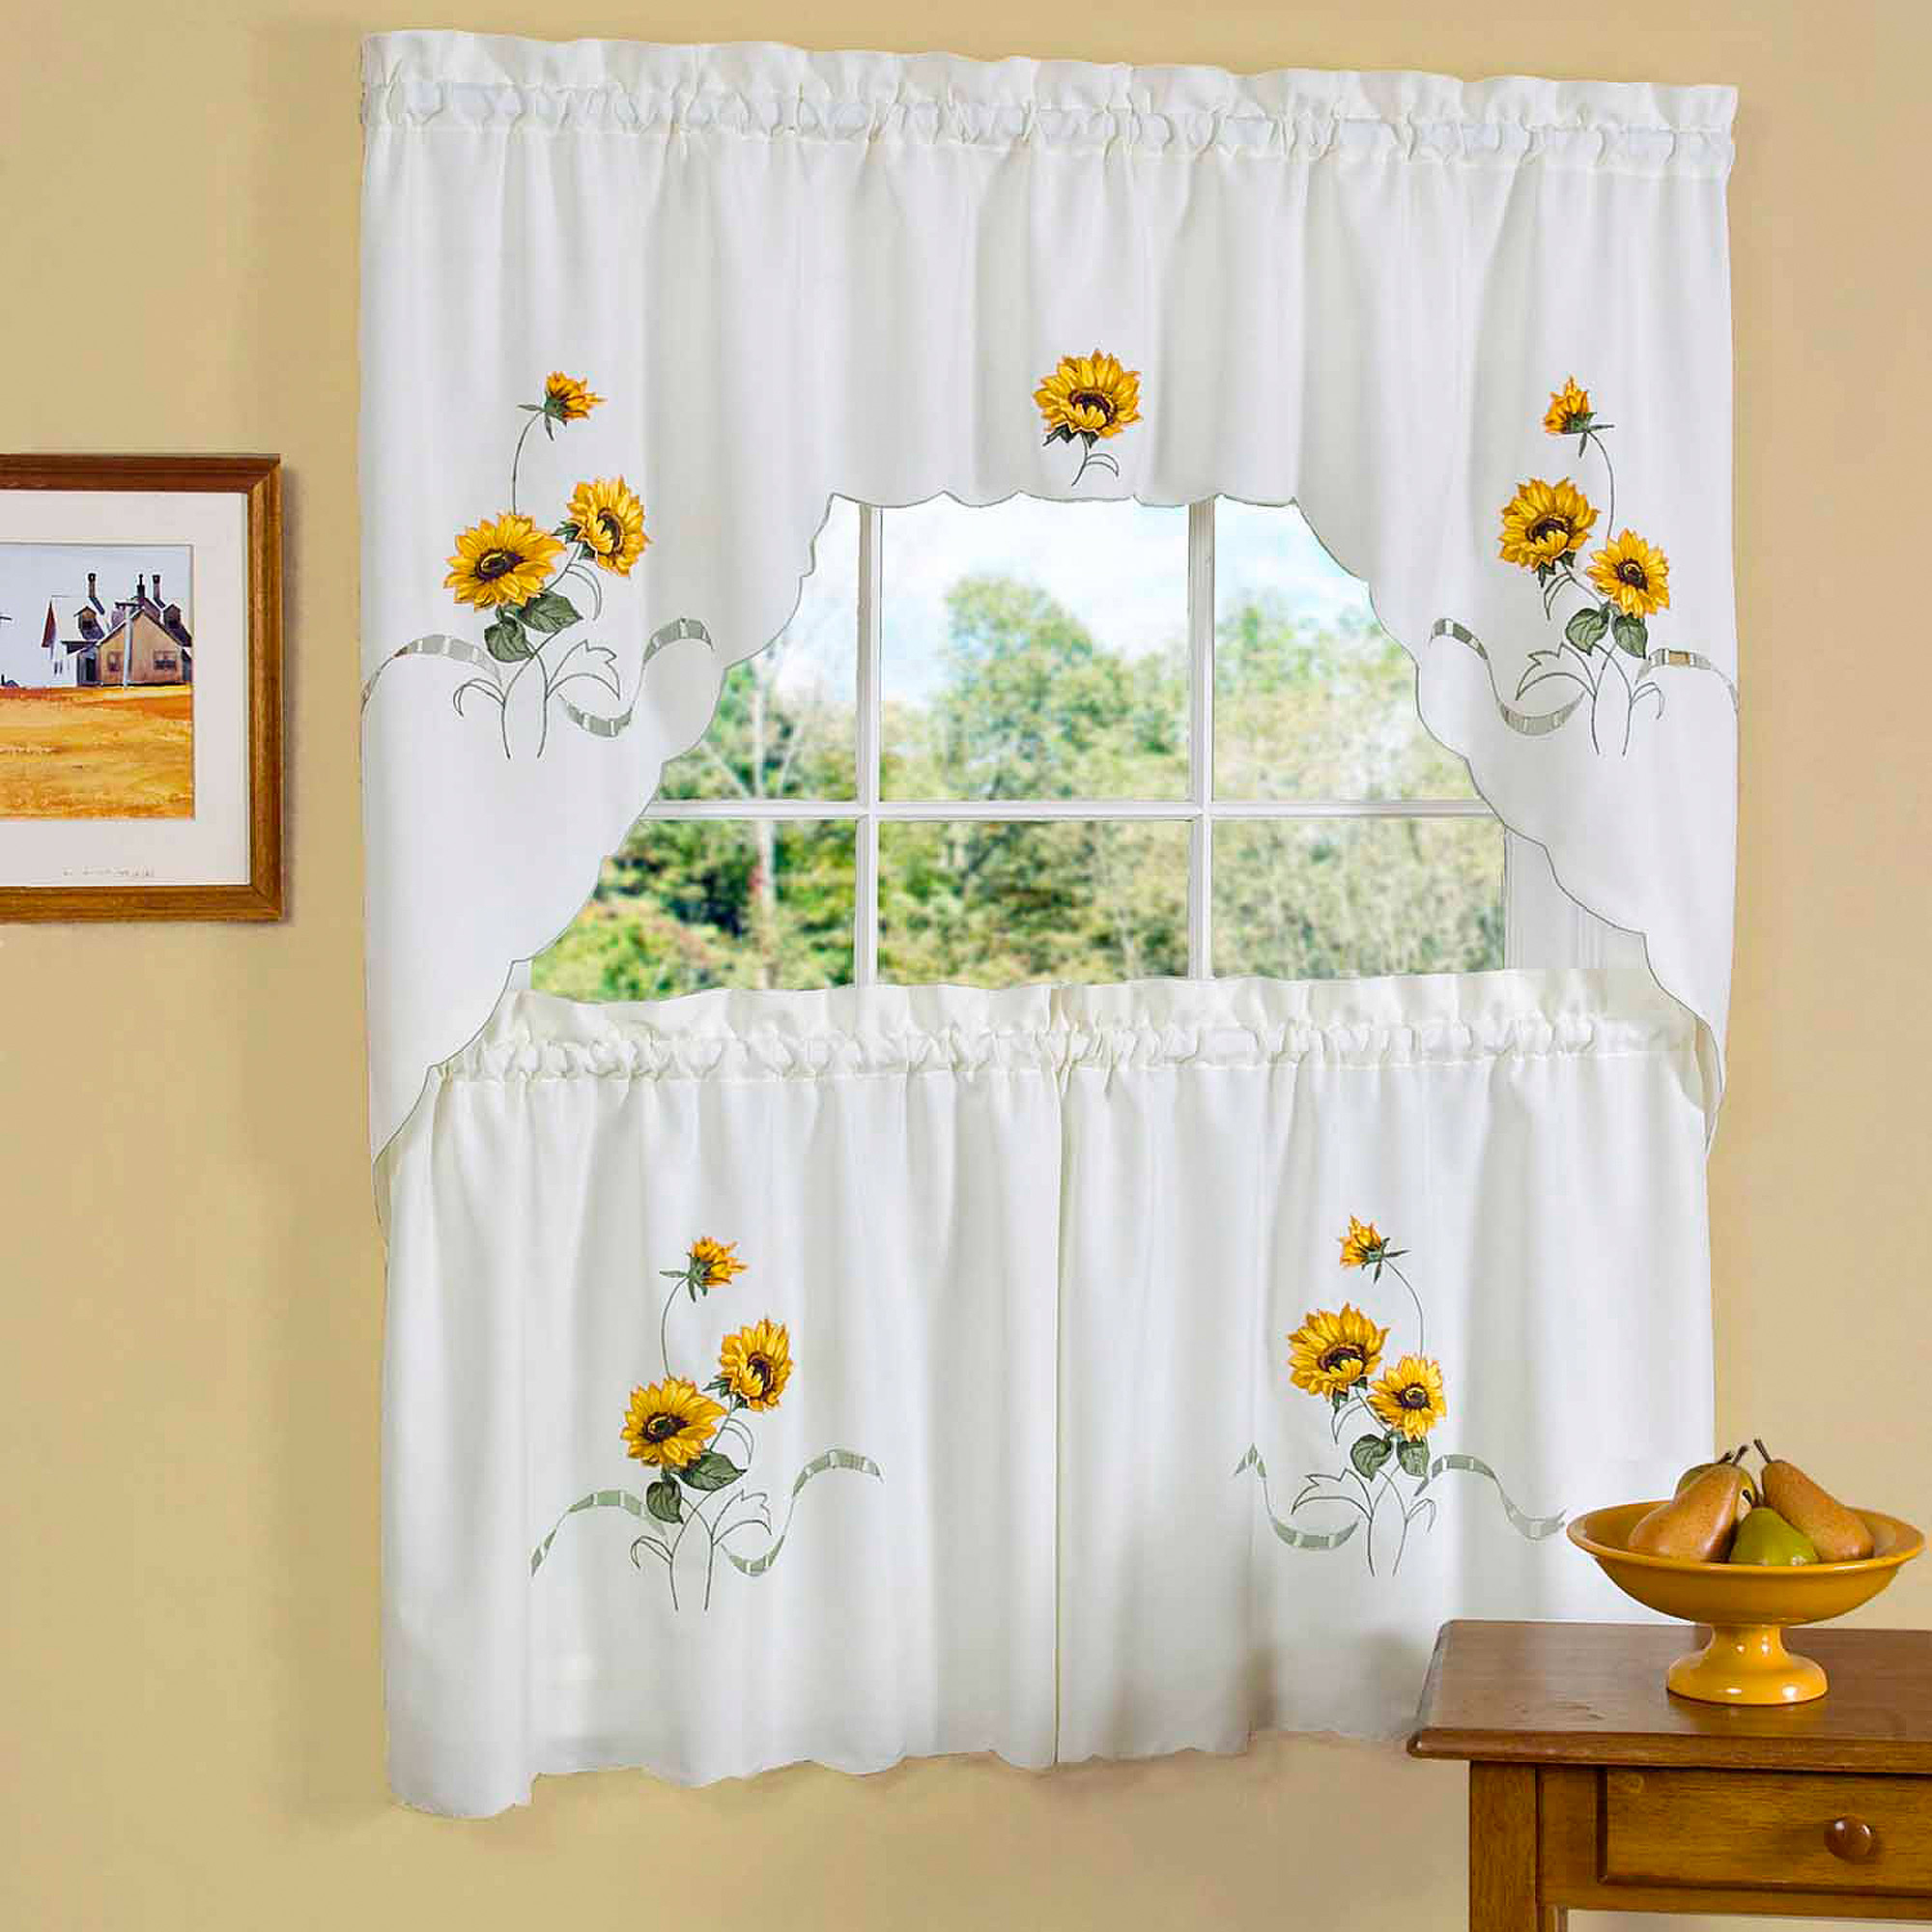 """Embroidered Ladybug Meadow Kitchen Curtains 24"""", 36"""" Tier Pair, 36"""" Swag Pair Or 12"""" Valance Within Embroidered Ladybugs Window Curtain Pieces (View 15 of 20)"""